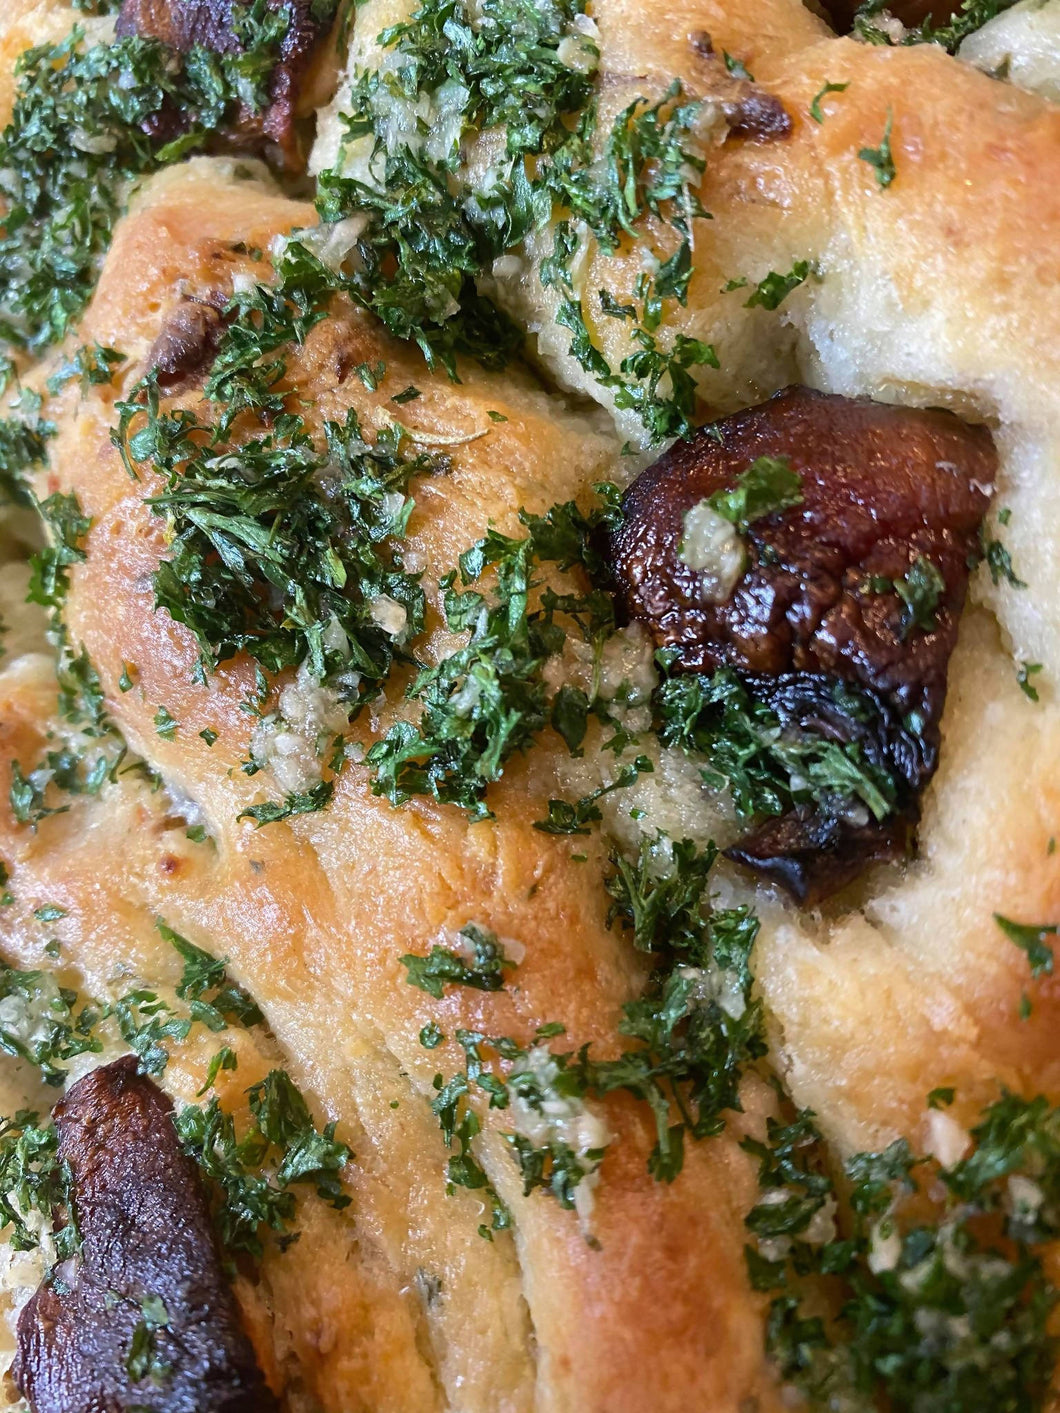 Roasted Mushroom, Herb & Garlic Focaccia